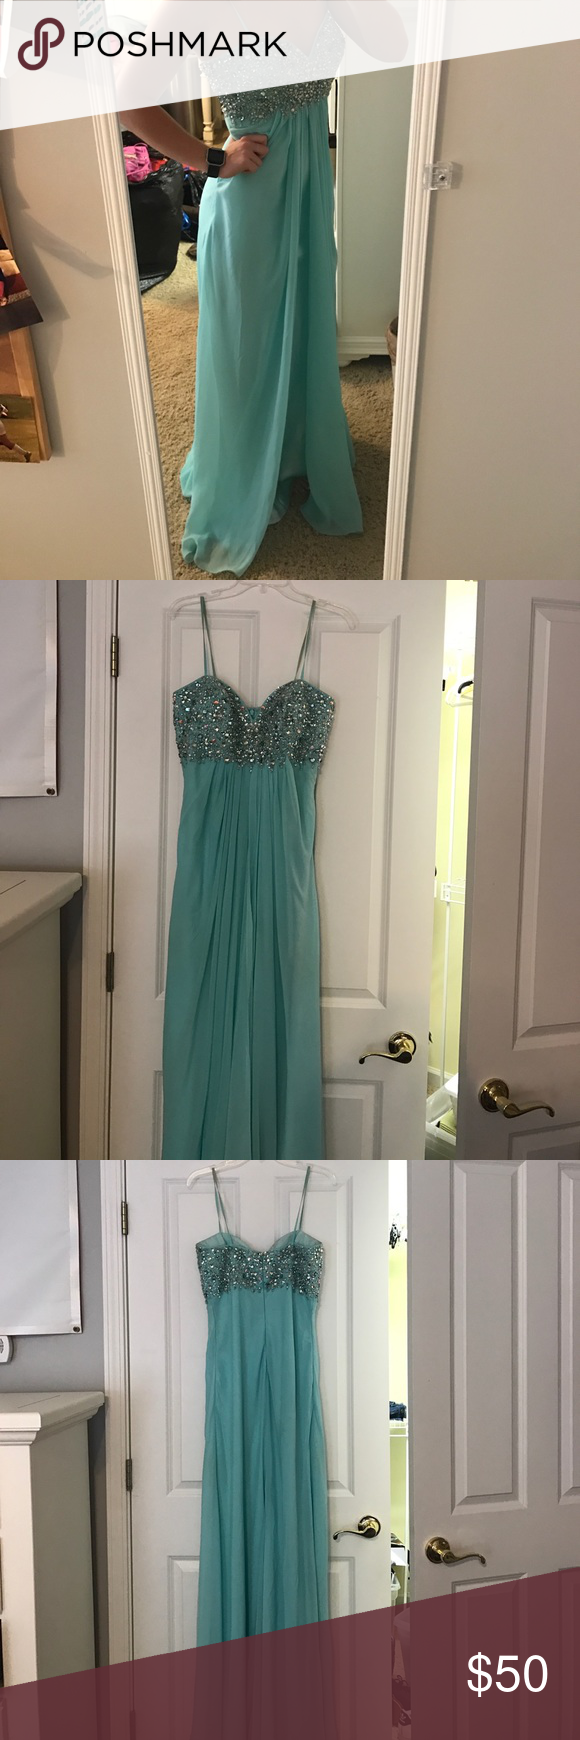 Aqua blue used prom dress with sequin detail this gently used prom